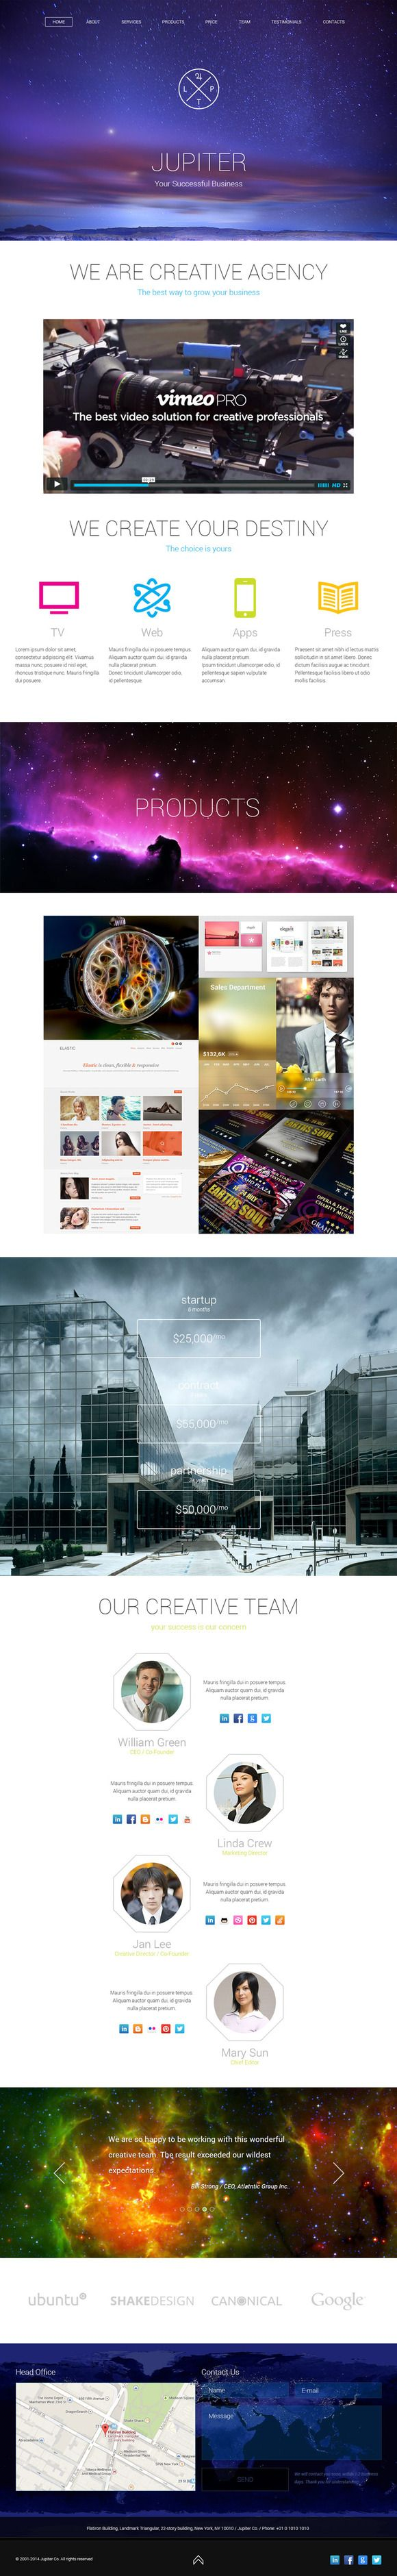 Jupiter Creative Agency PSD Template by ShakeDesign on Creative Market